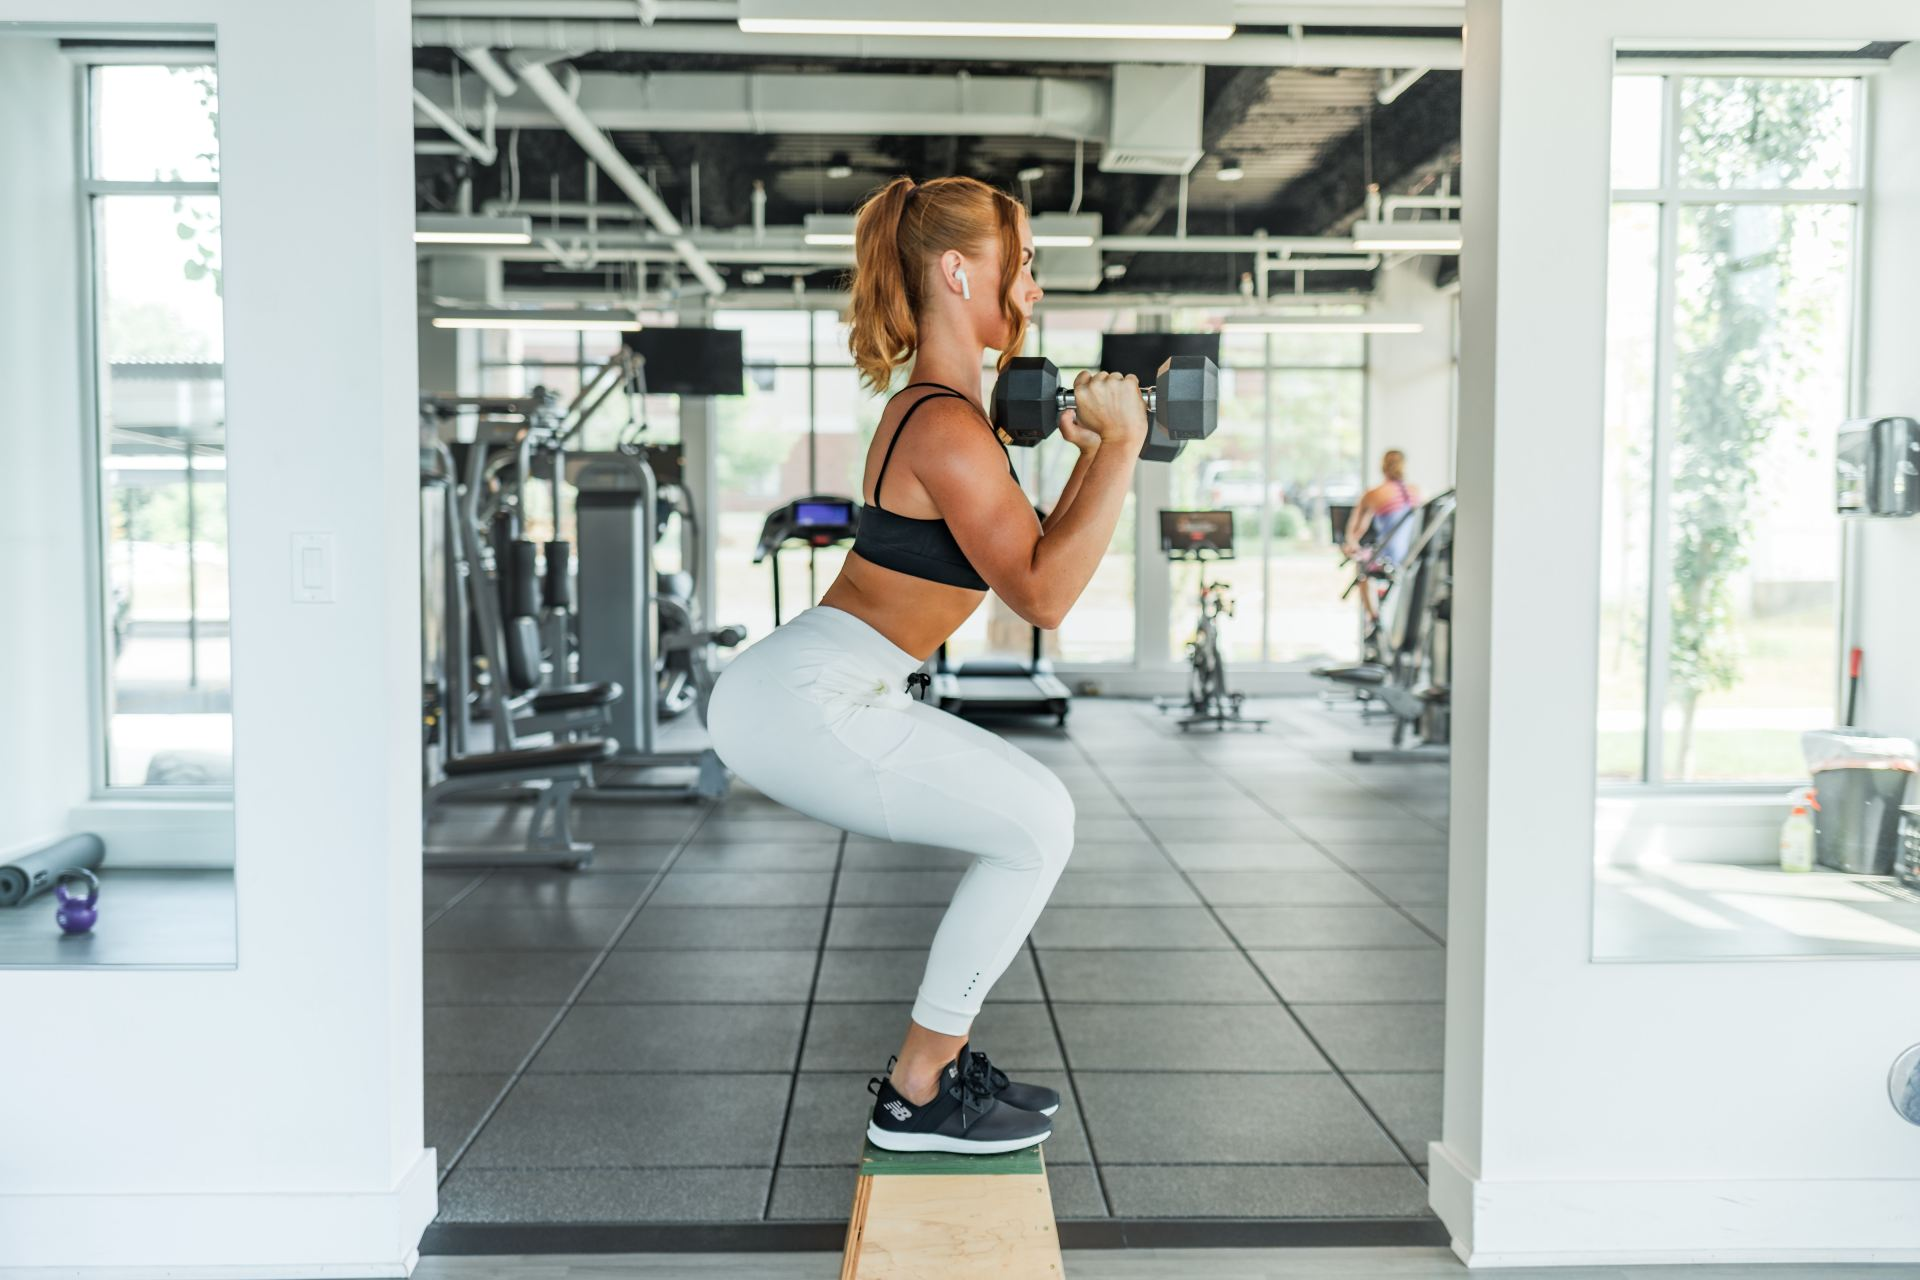 30 Reminders To Read If Your 2020 Resolution Is To Join A Gym